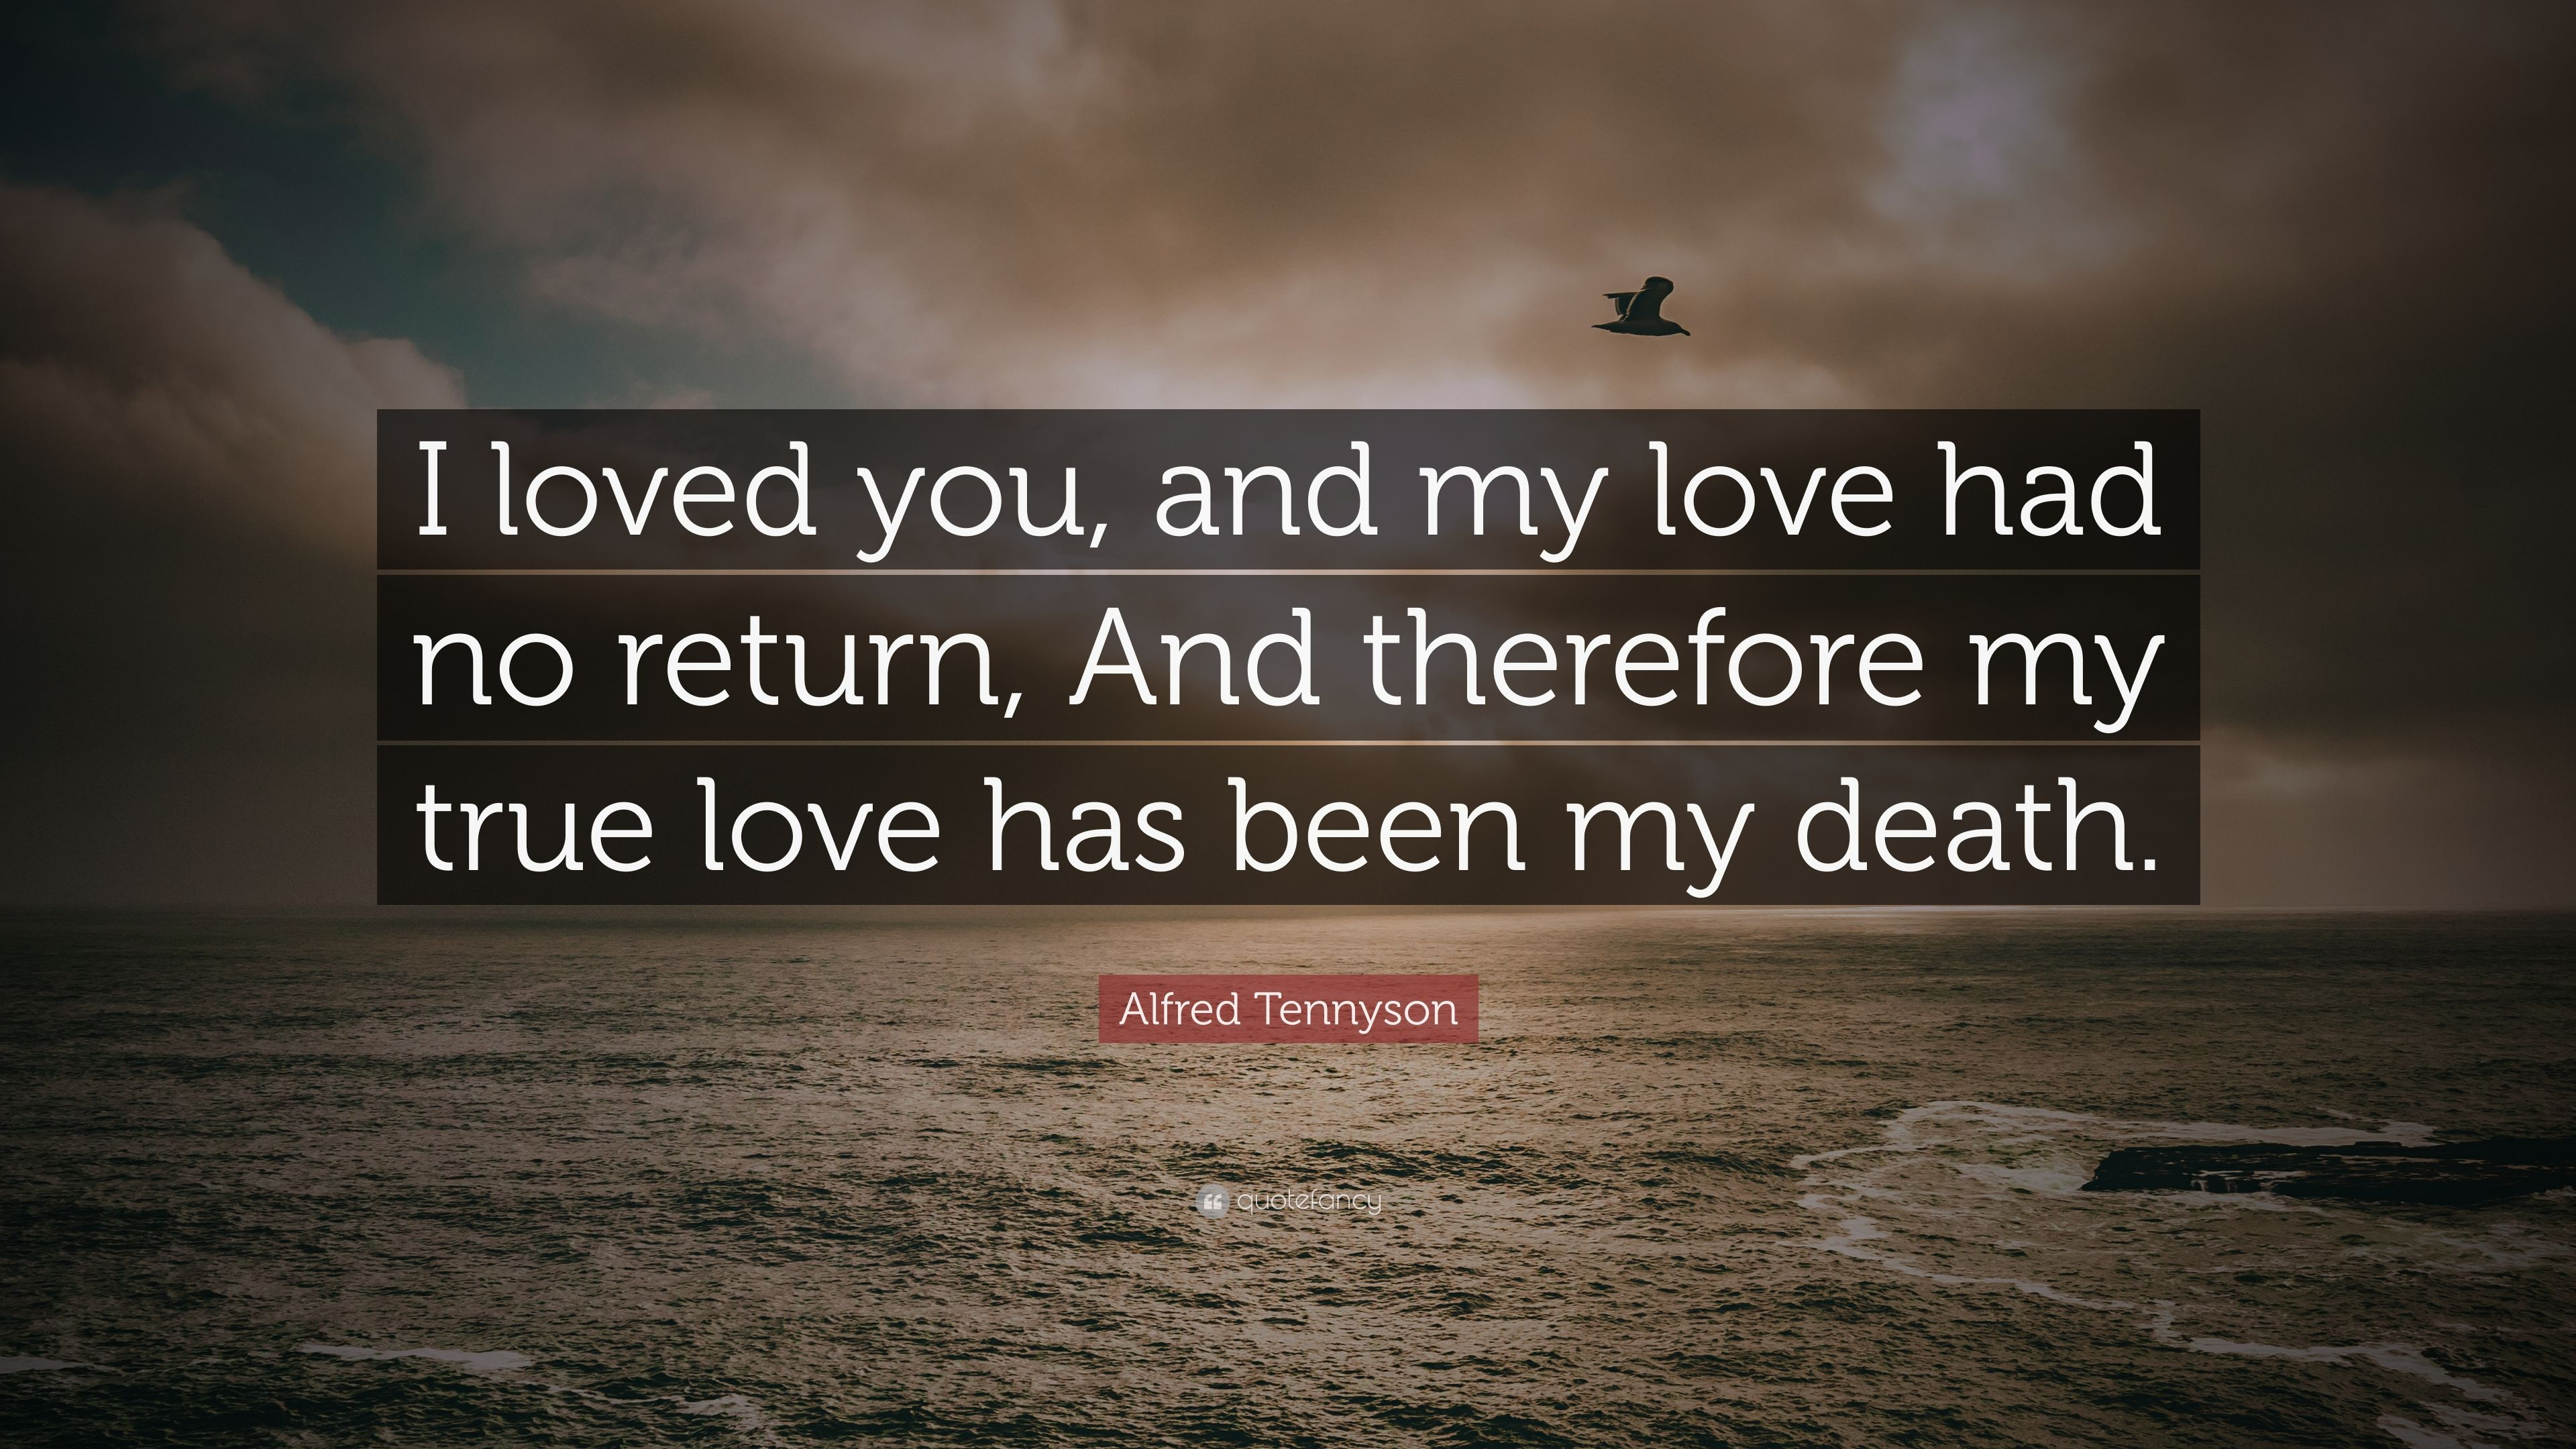 Alfred Tennyson Quote: U201cI Loved You, And My Love Had No Return,